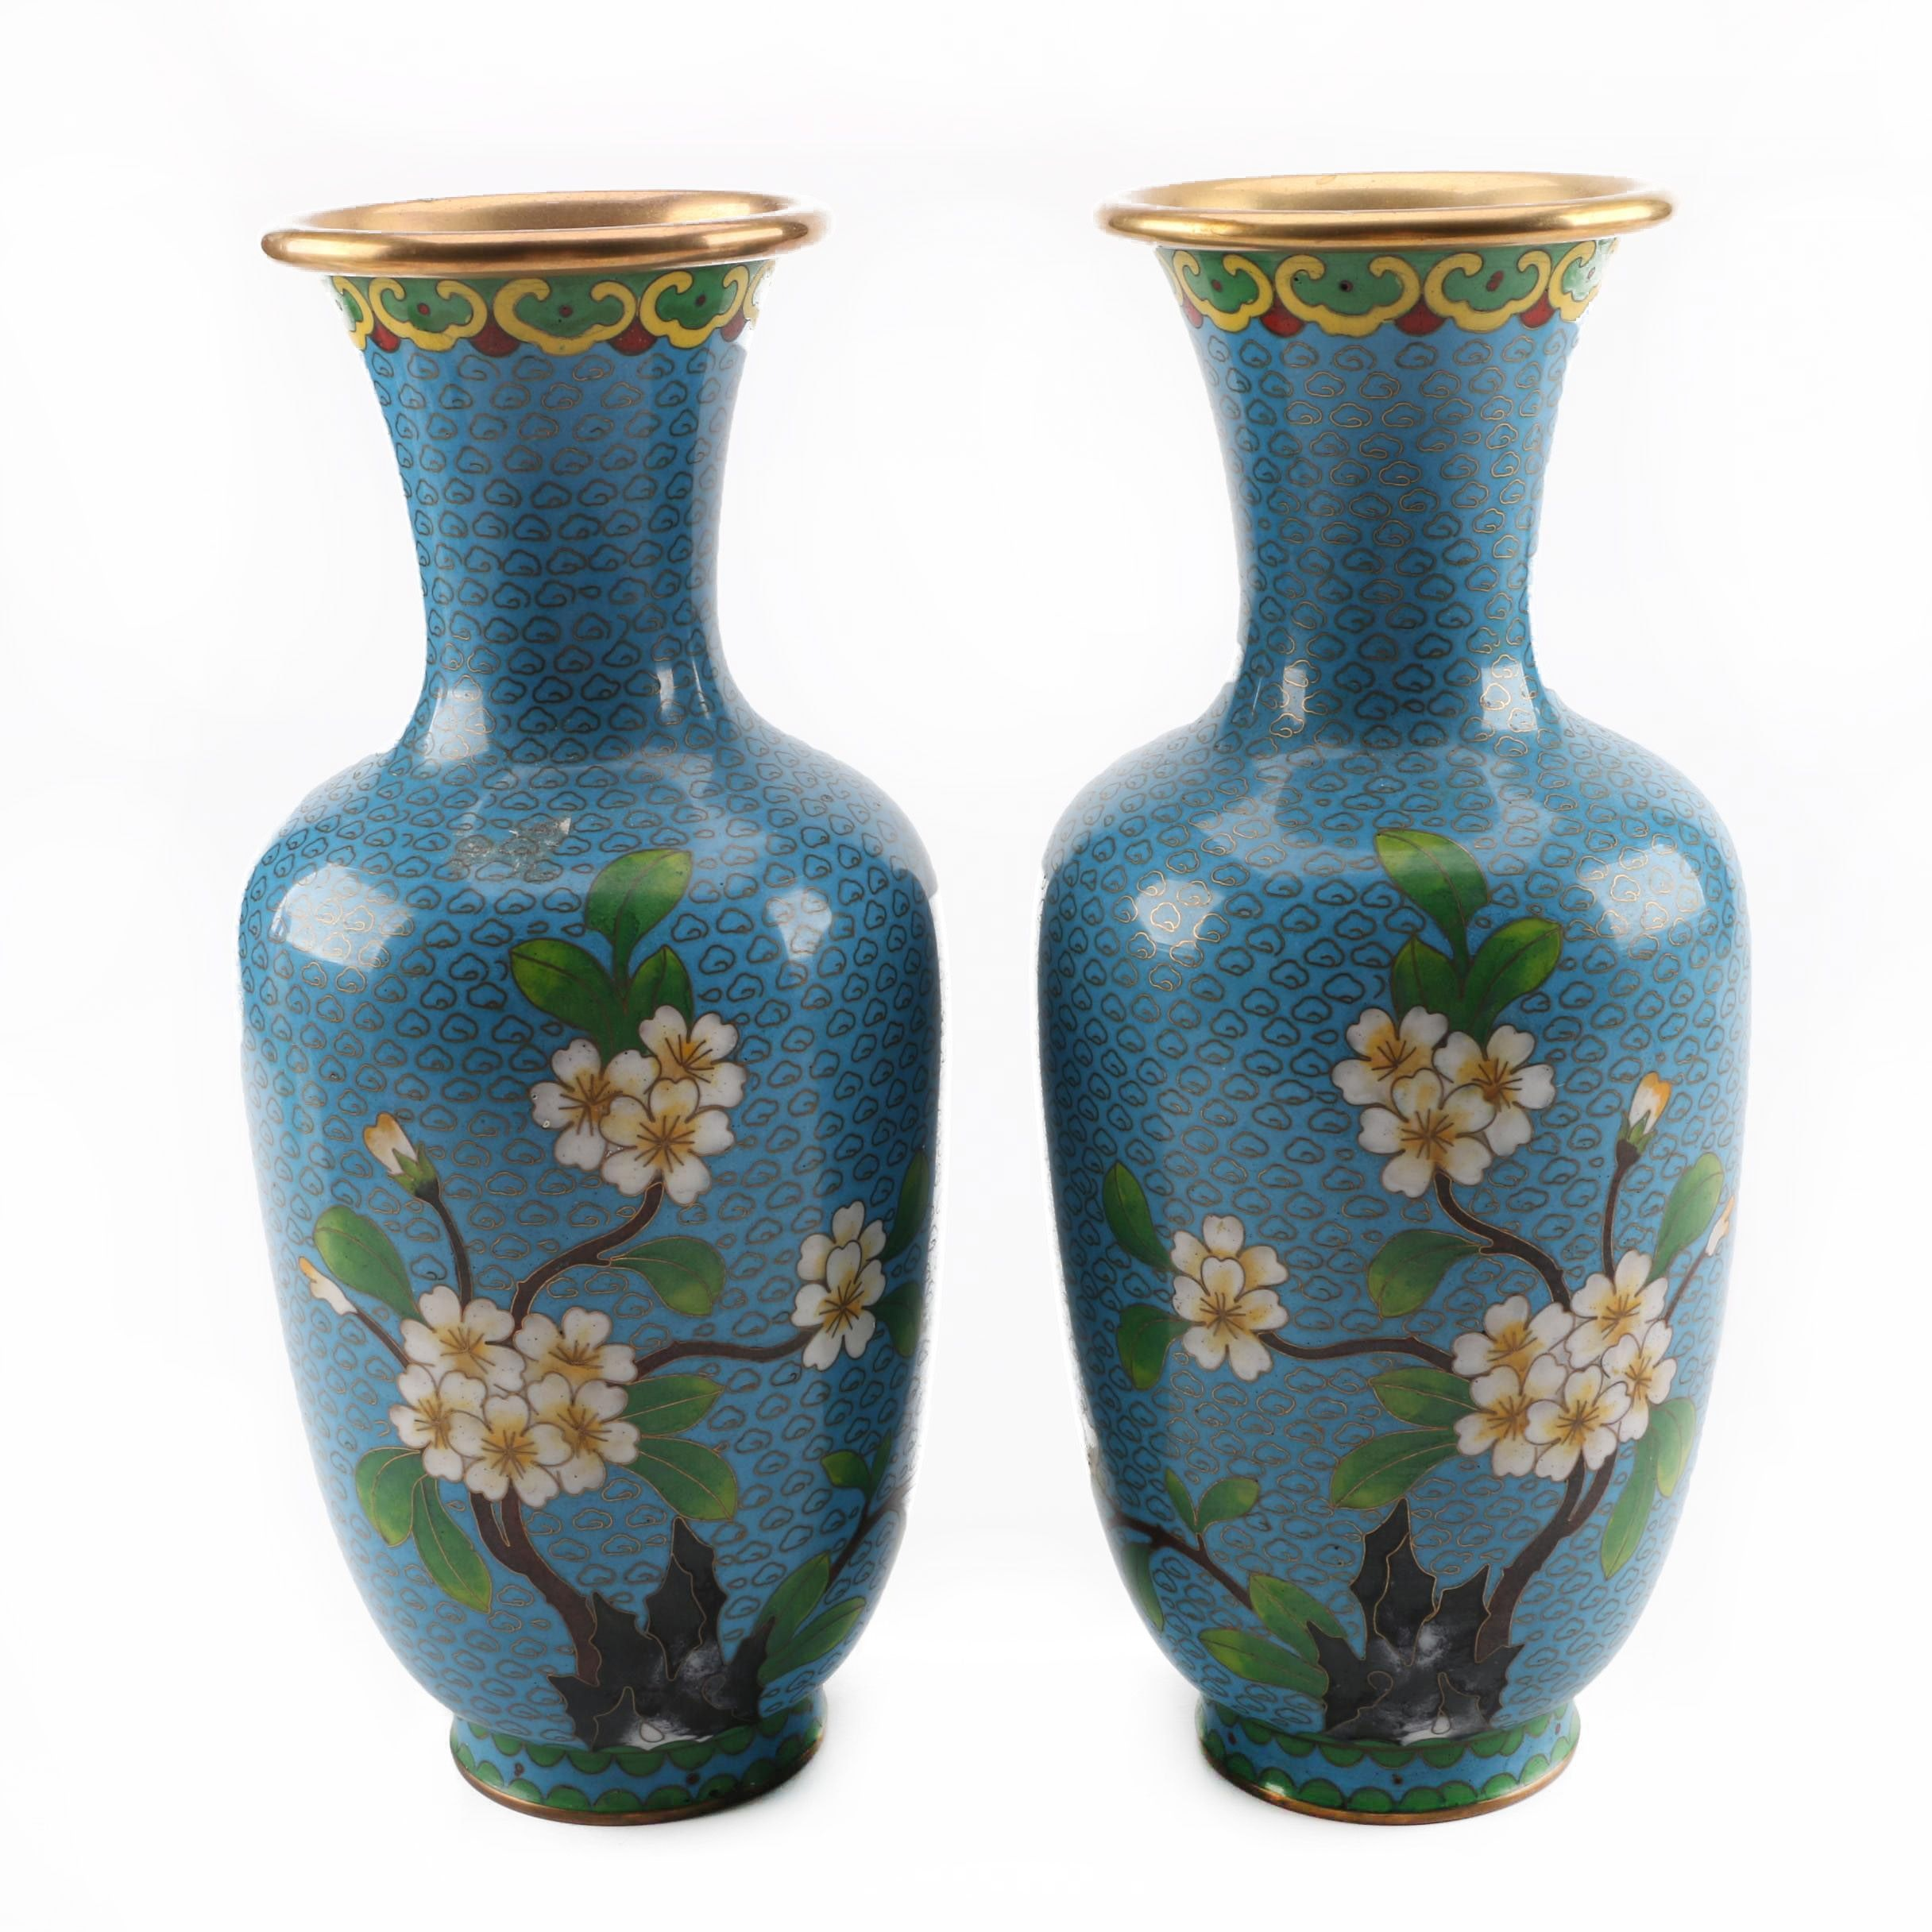 Chinese Cloisonné Vases Depicting Cherry Blossoms